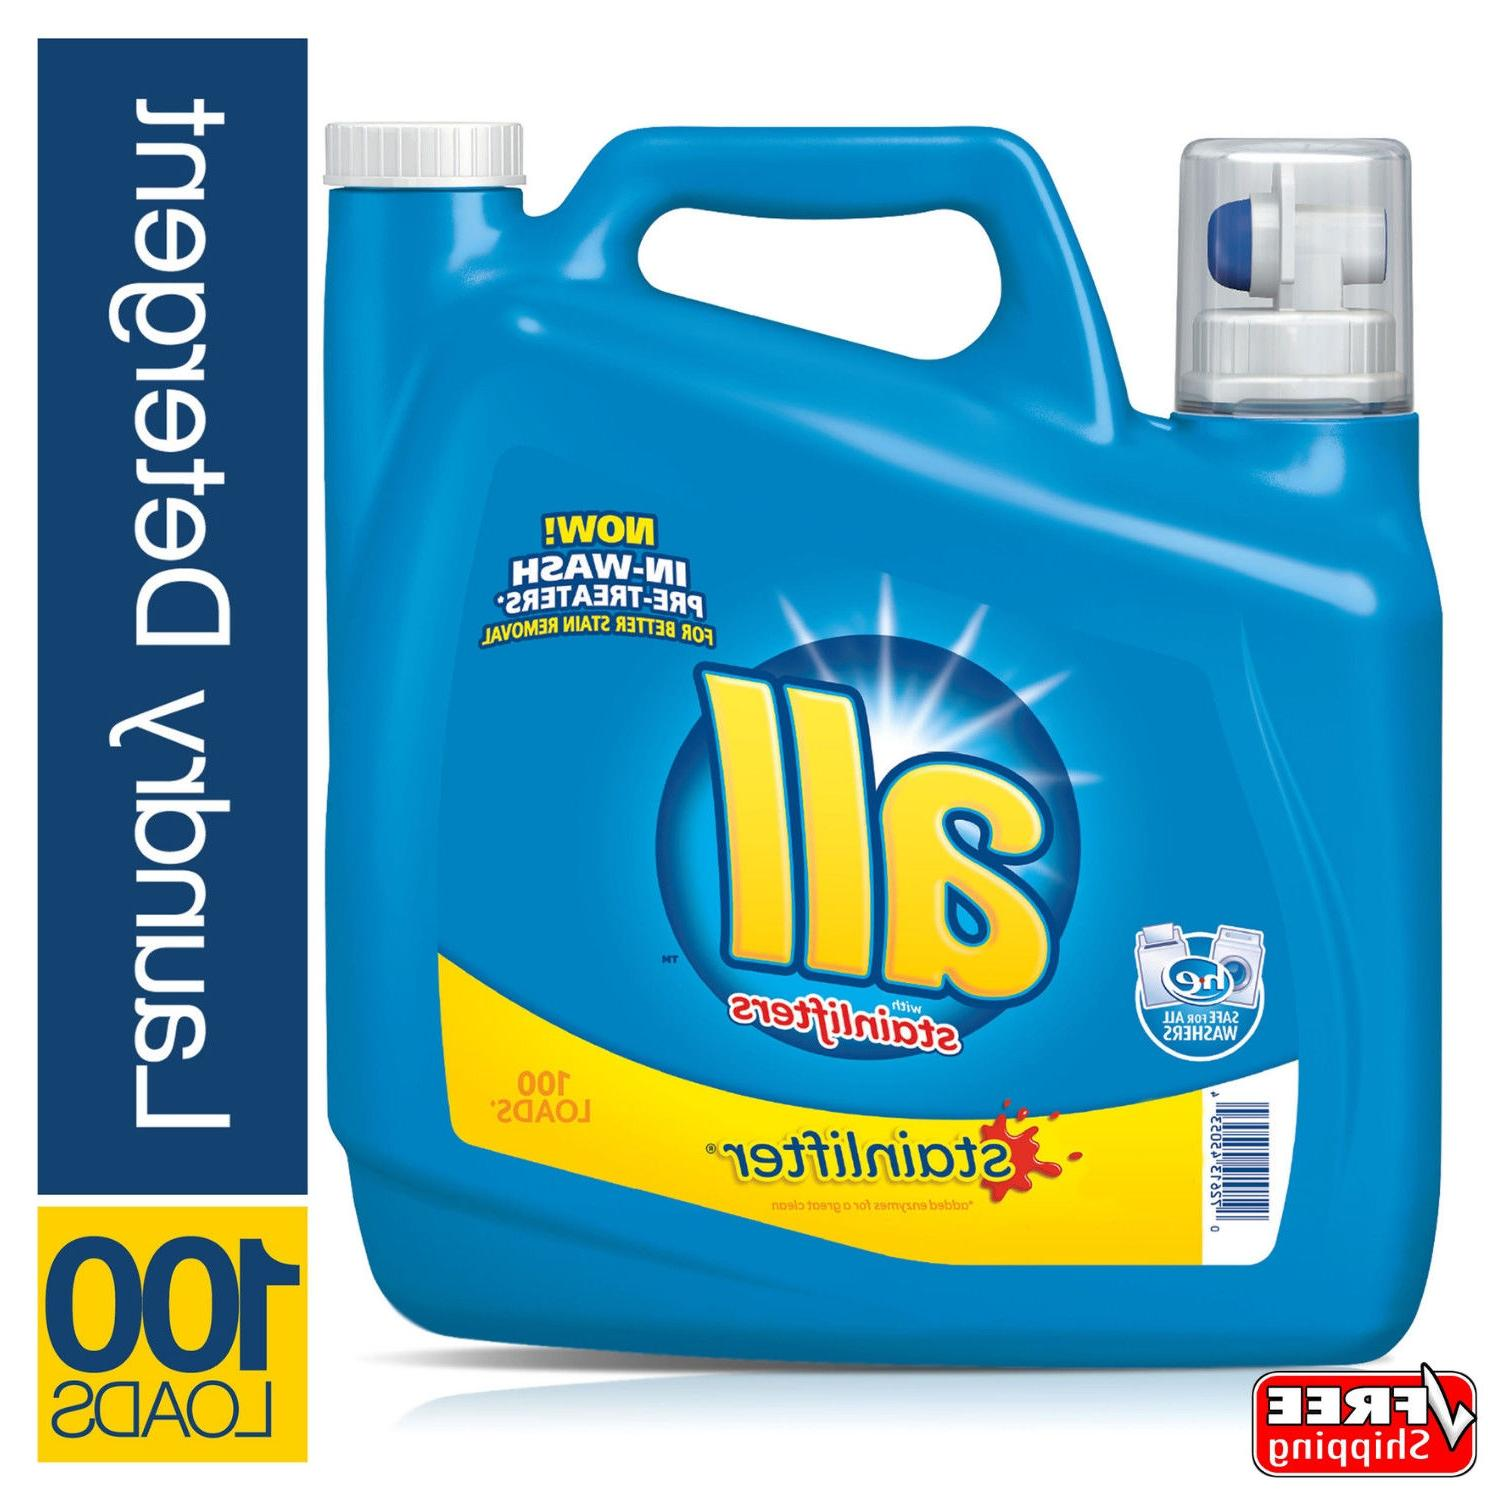 ALL Stainlifter Liquid Laundry Detergent Active Stainlifter